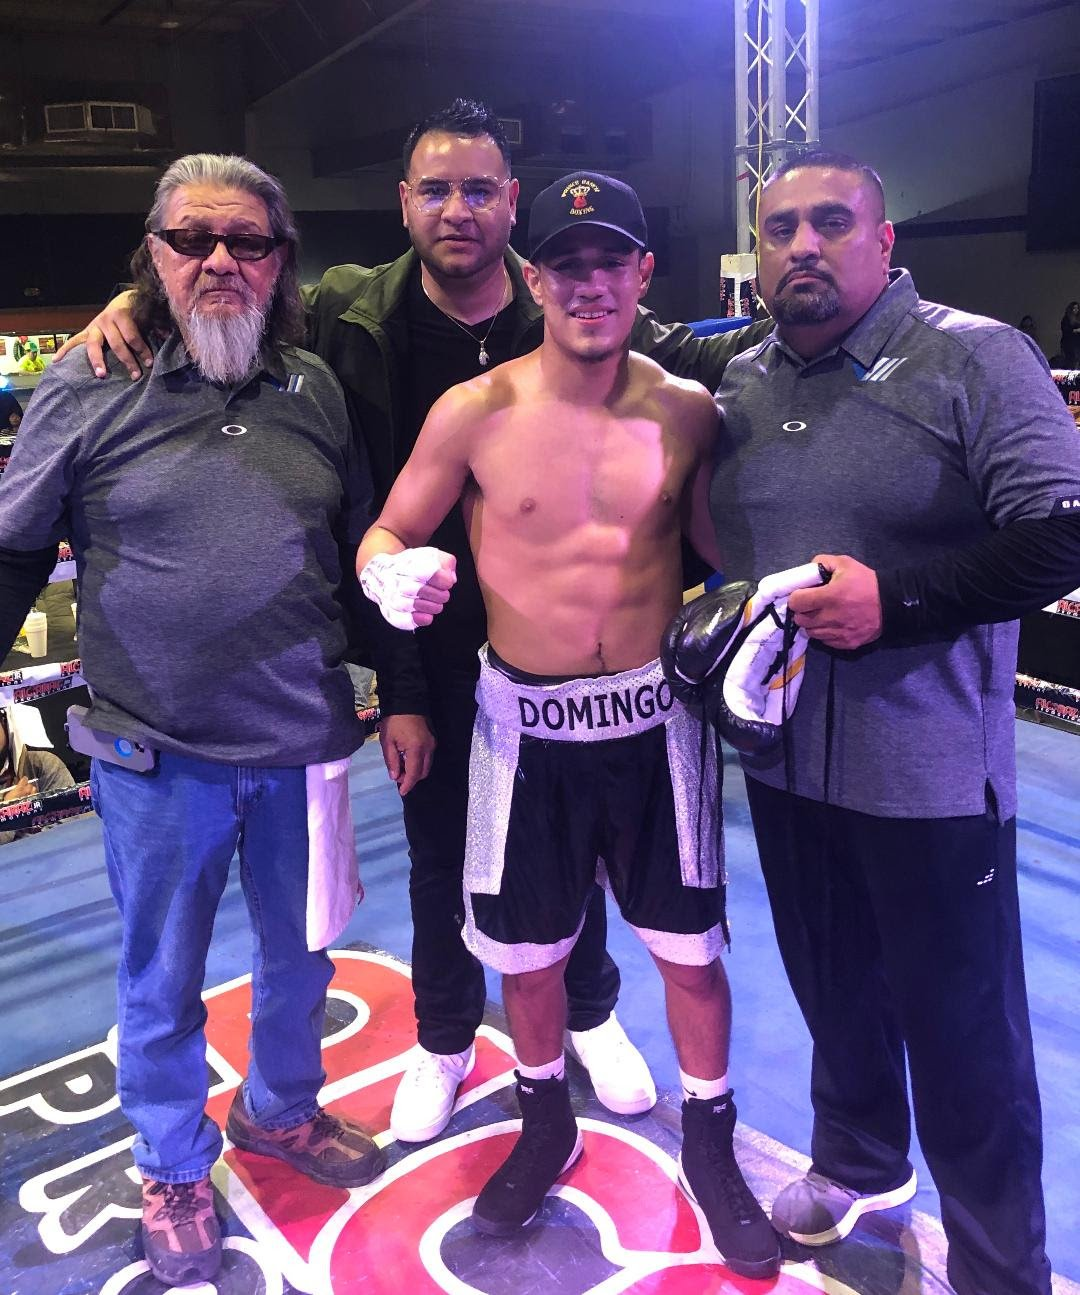 Hector Coronado, Richard Medina -  Prince Ranch Boxing's undefeated blue-chip prospects picked up big wins tonight as featherweight Richard Medina (7-0, 6 KO), and welterweight Hector Coronado (5-0, 4 KOs), both picked up spectacular wins on Friday, February 7, 2020, at the Centro de Convenciones in Matamoros, Tamaulipas, Mexico